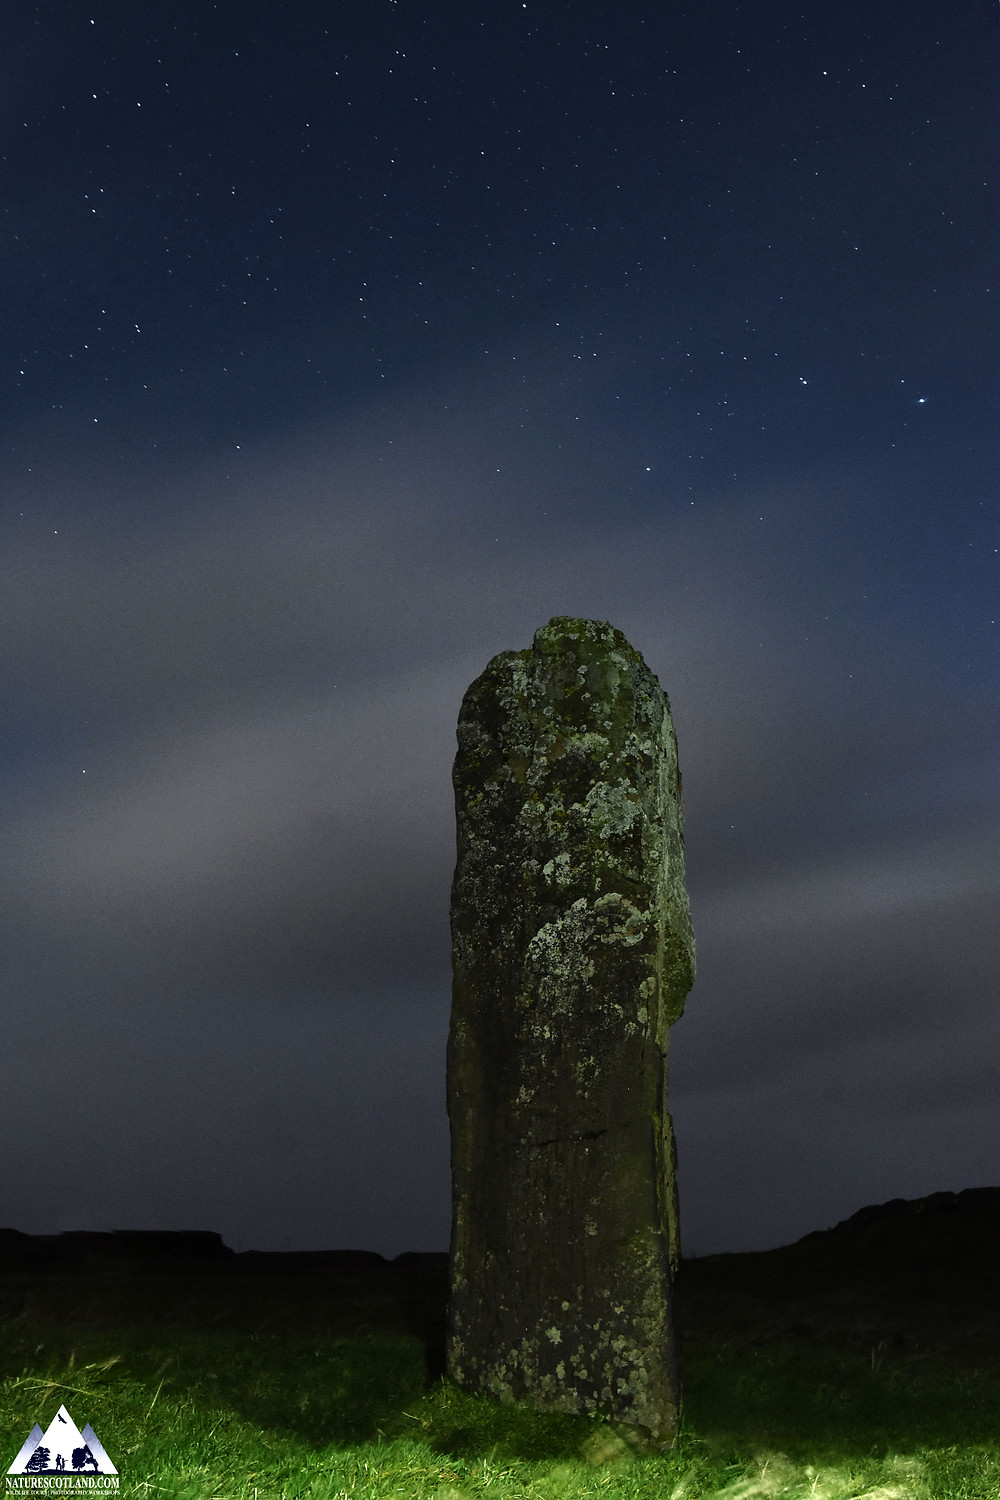 Night Photography, Standing Stone, Mull, Isle of Mull, Stargazing,